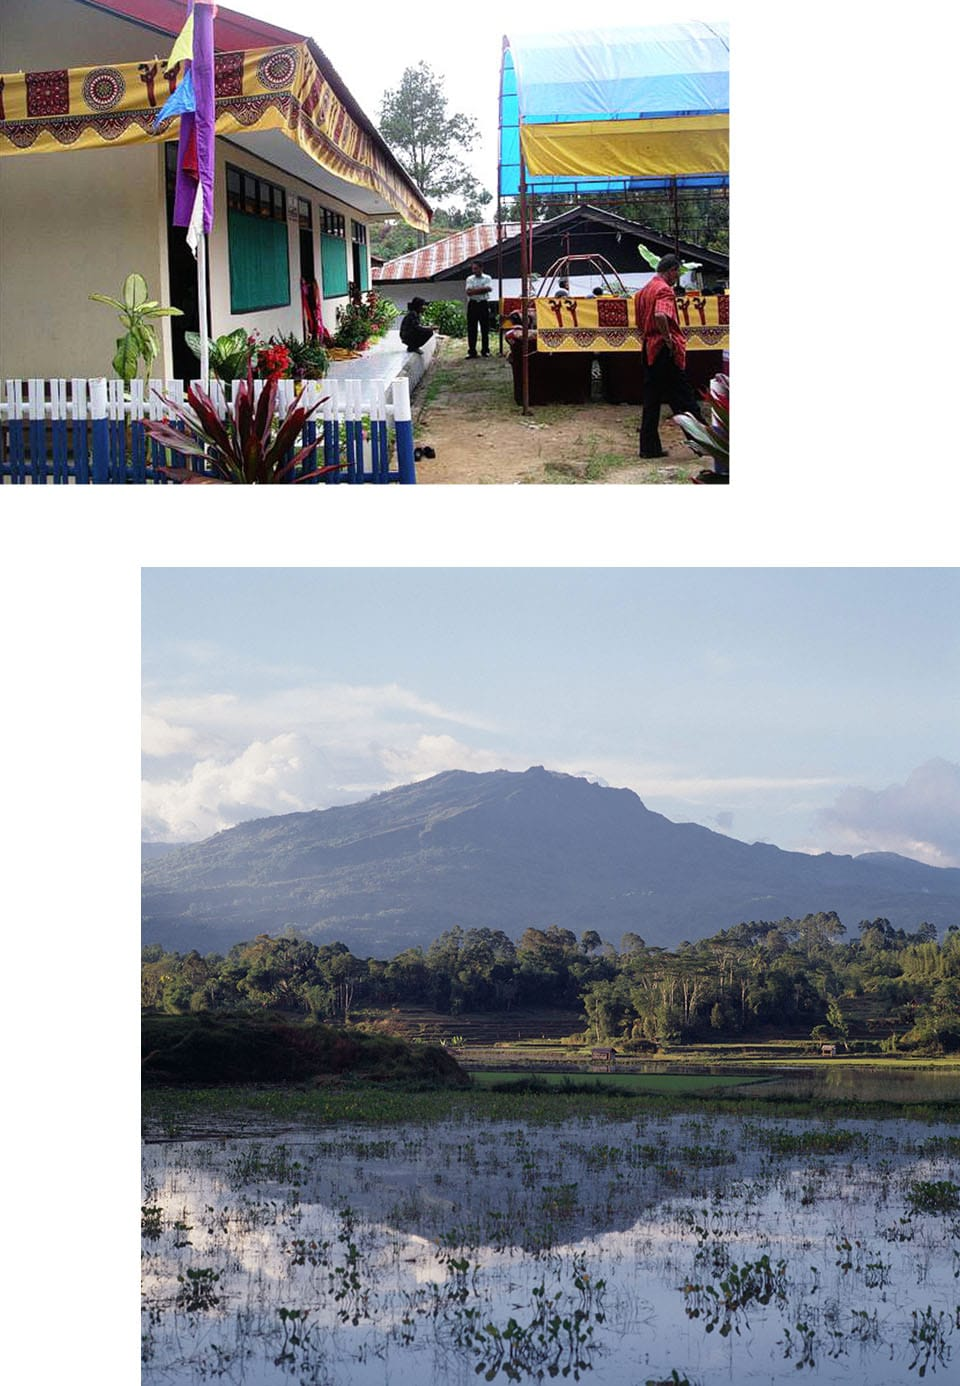 Collage of the exterior of a building with some people in the background and a landscape photo with a mountain, trees, and a shallow body of water